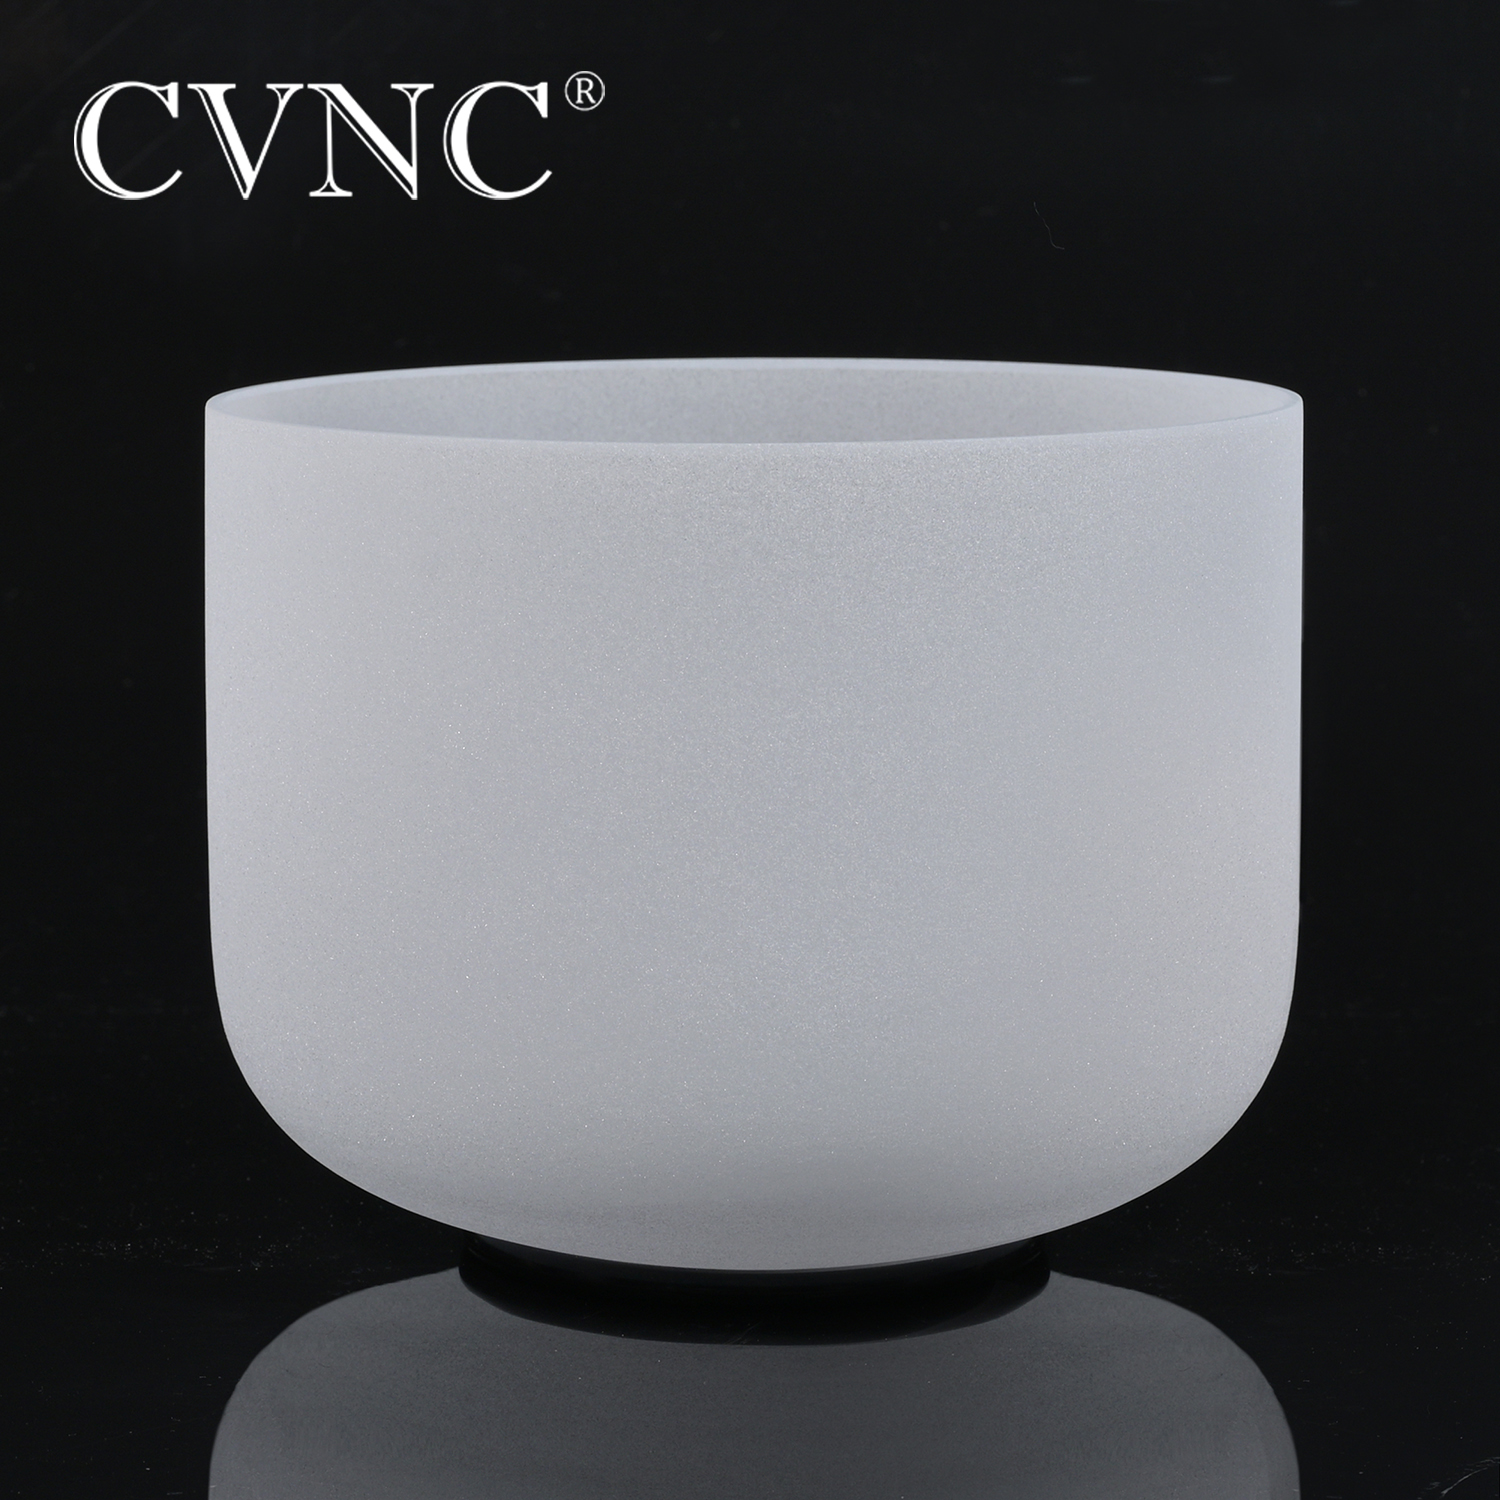 CVNC 7 Inch Any Note  C D E F G A B C# D# F# G# A#  Chakra  Frosted Crystal Quartz Singing Bowl